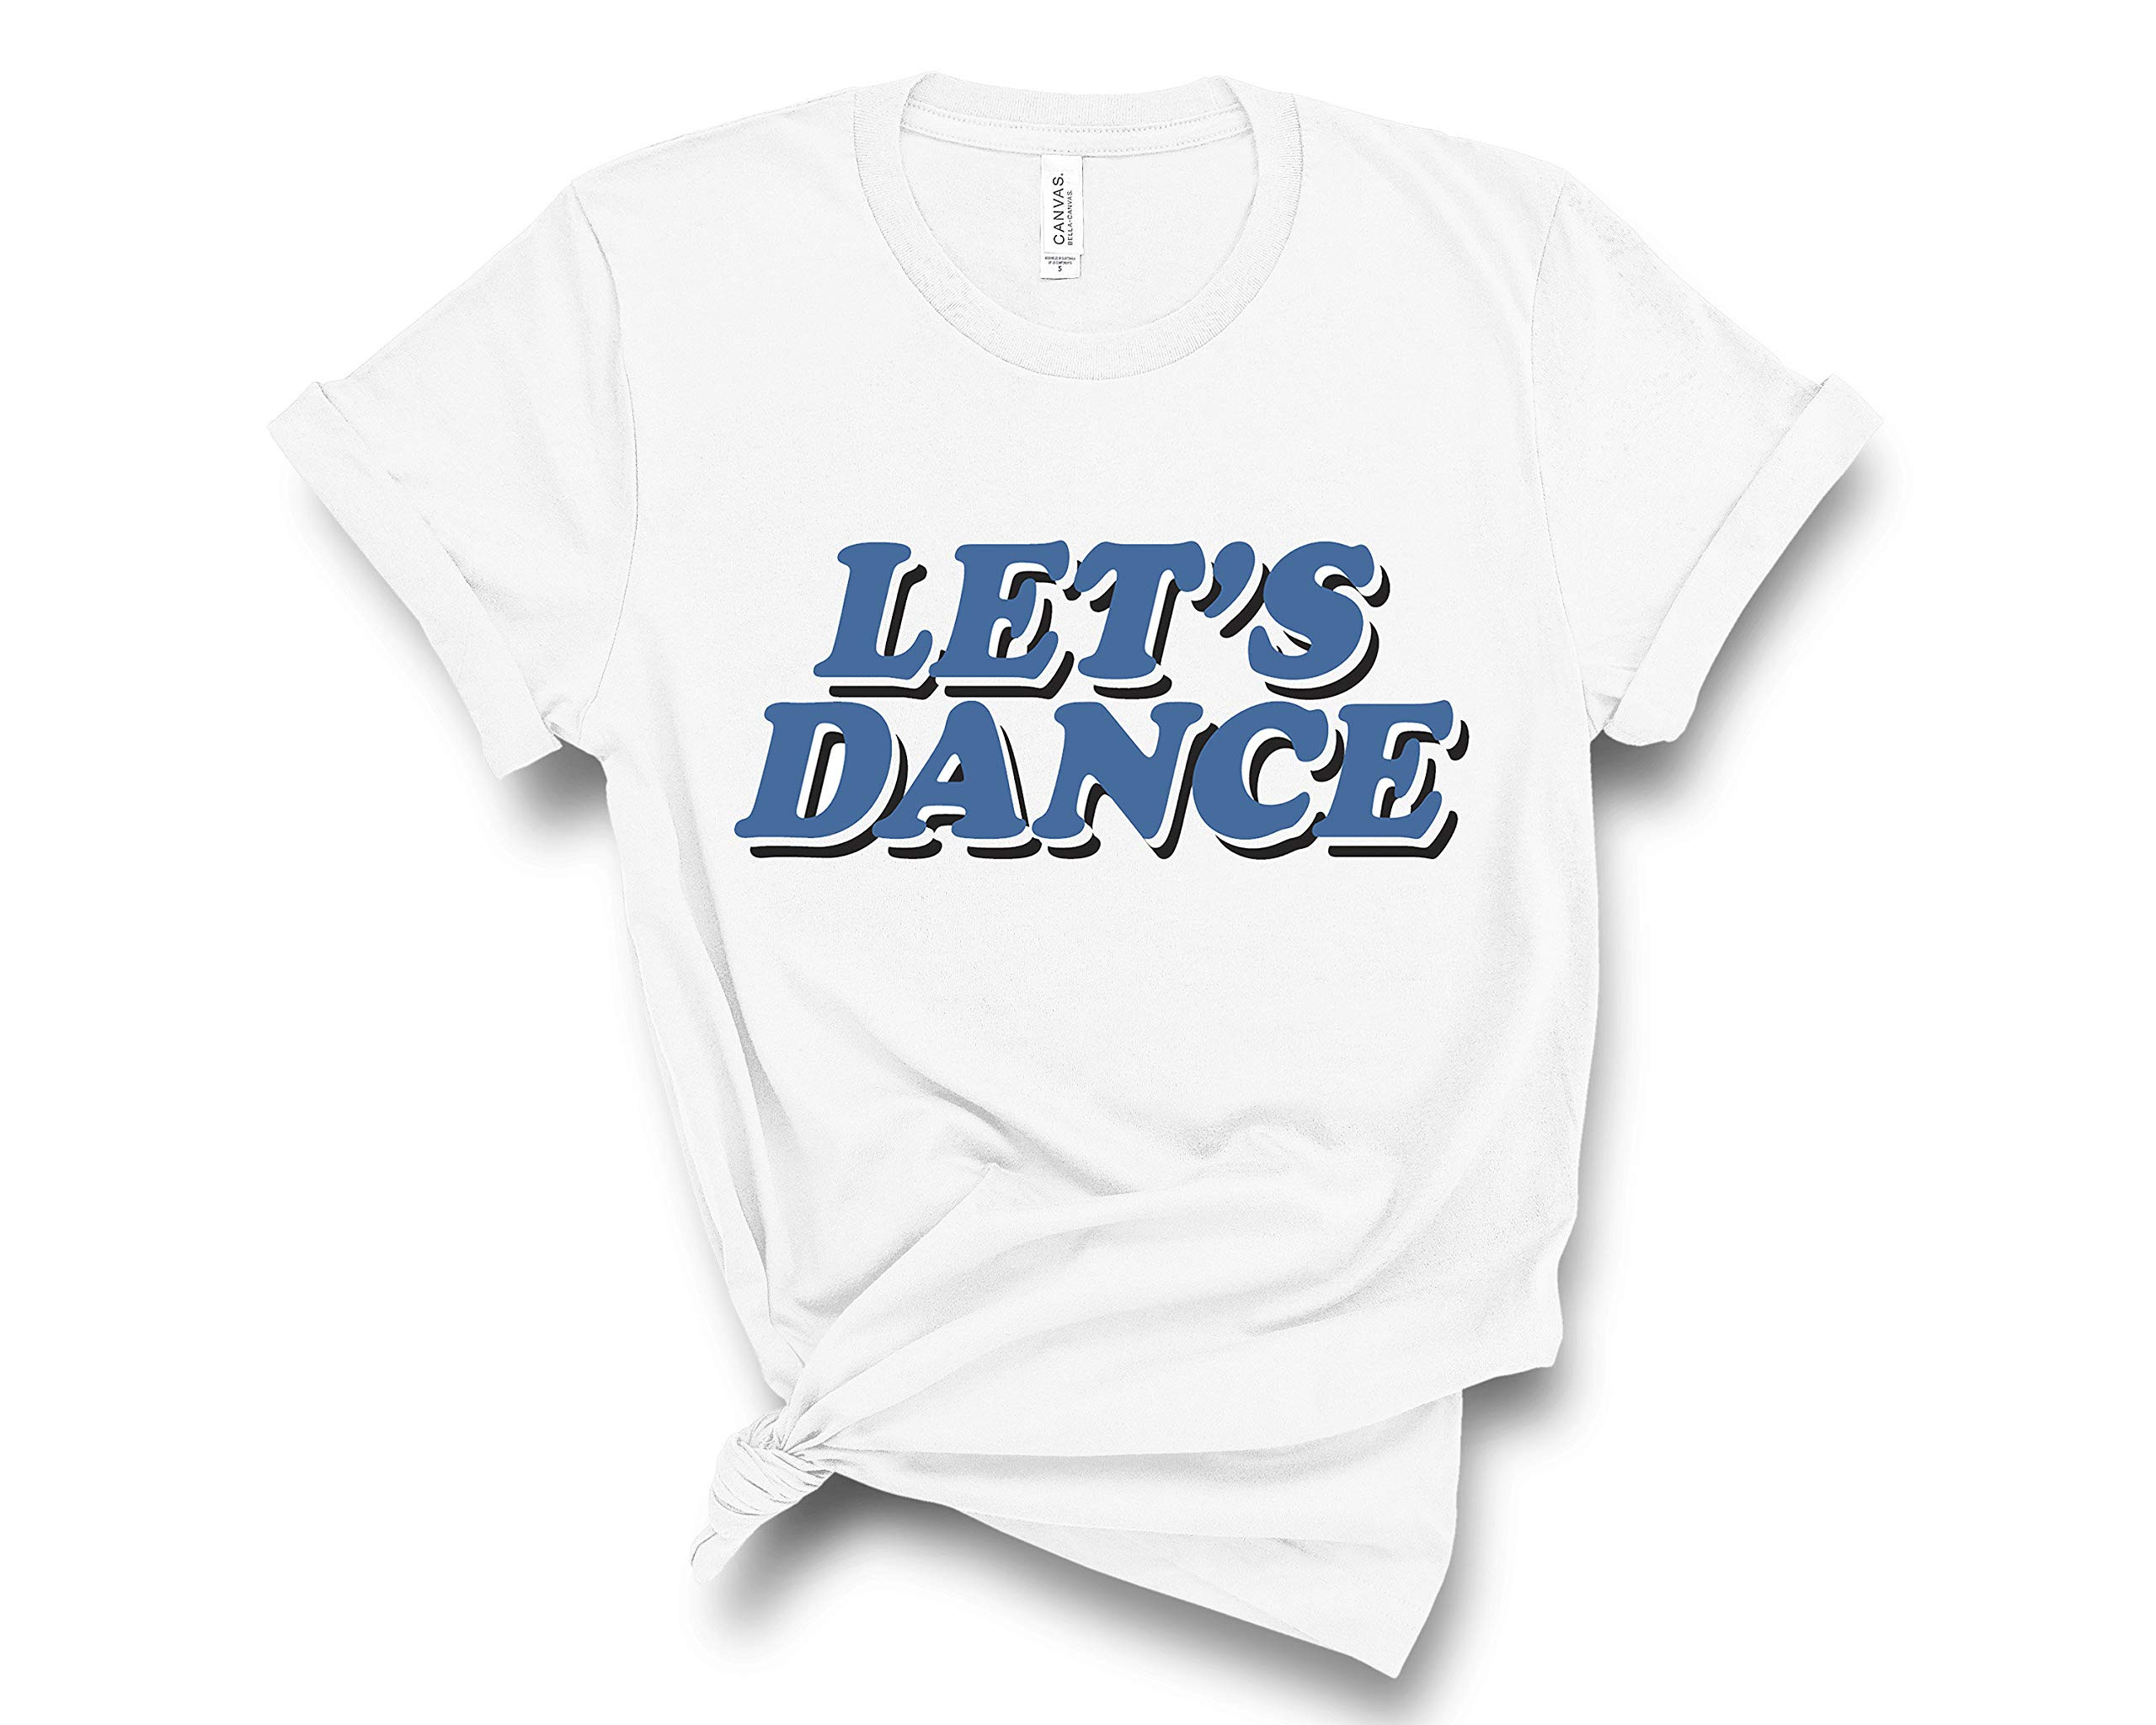 Let's Dance Shirt, Aesthetic Shirt, Tumblr T-shirt, Summer Tees, Quote T-shirt Women, Event T-shirts, Birthday Party Shirt, Dance Quote Gift by